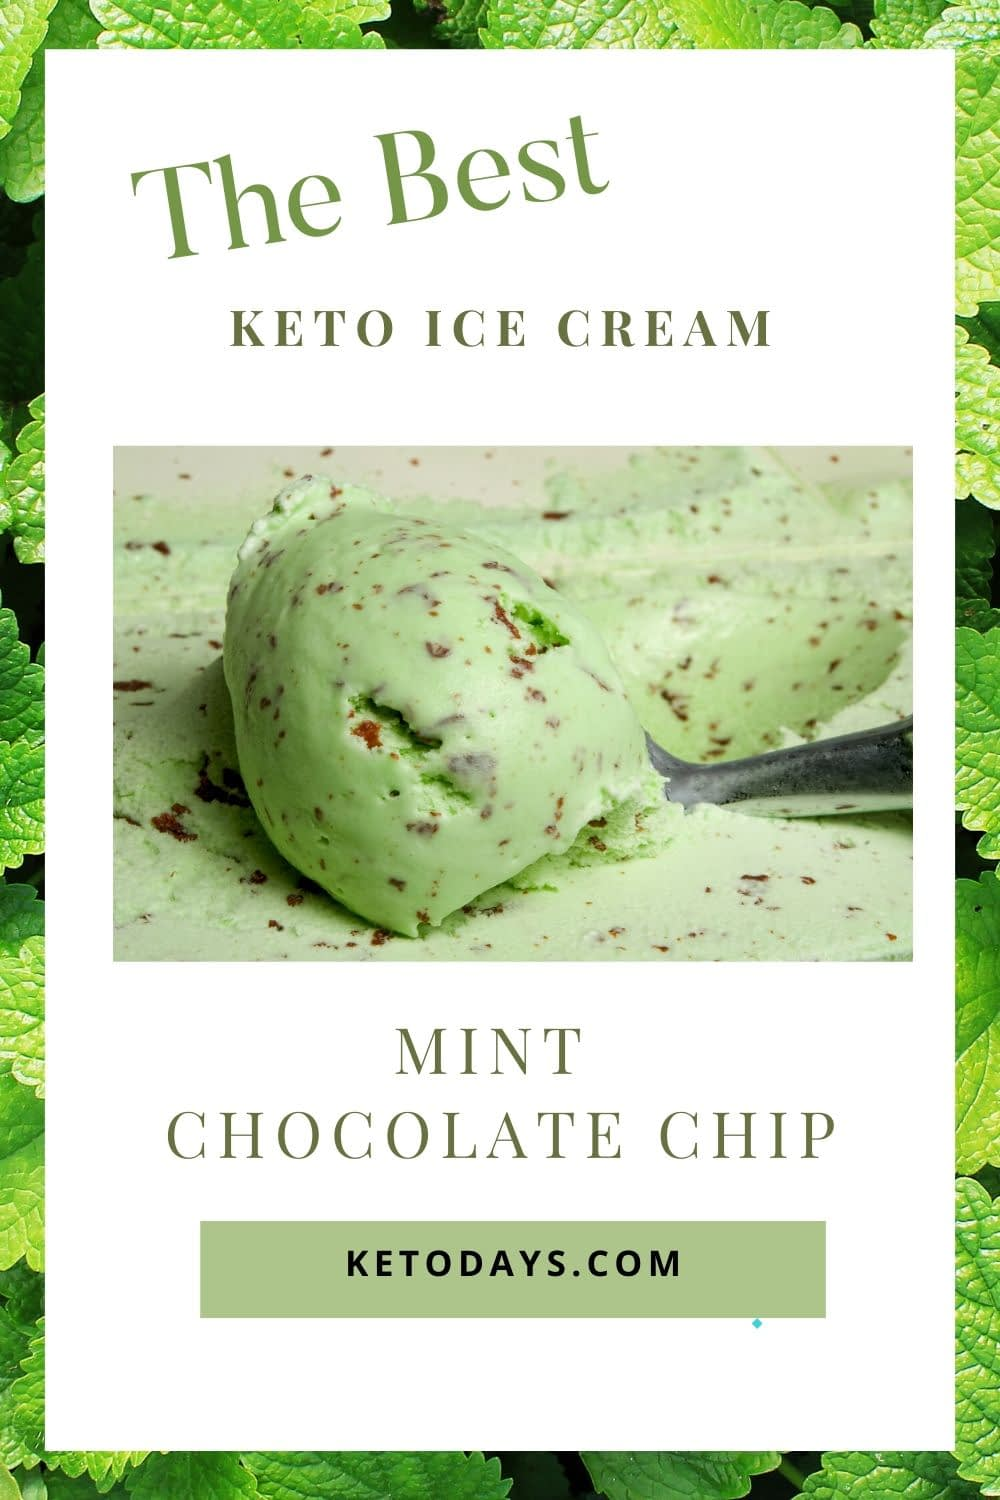 Mint chocolate chip is a crowd favorite when it comes to ice cream. Just because you're doing a Keto or low-carb diet doesn't mean you have to give that up! Here's a Keto ice cream recipe for mint chocolate chip ice cream to satisfy your palette.